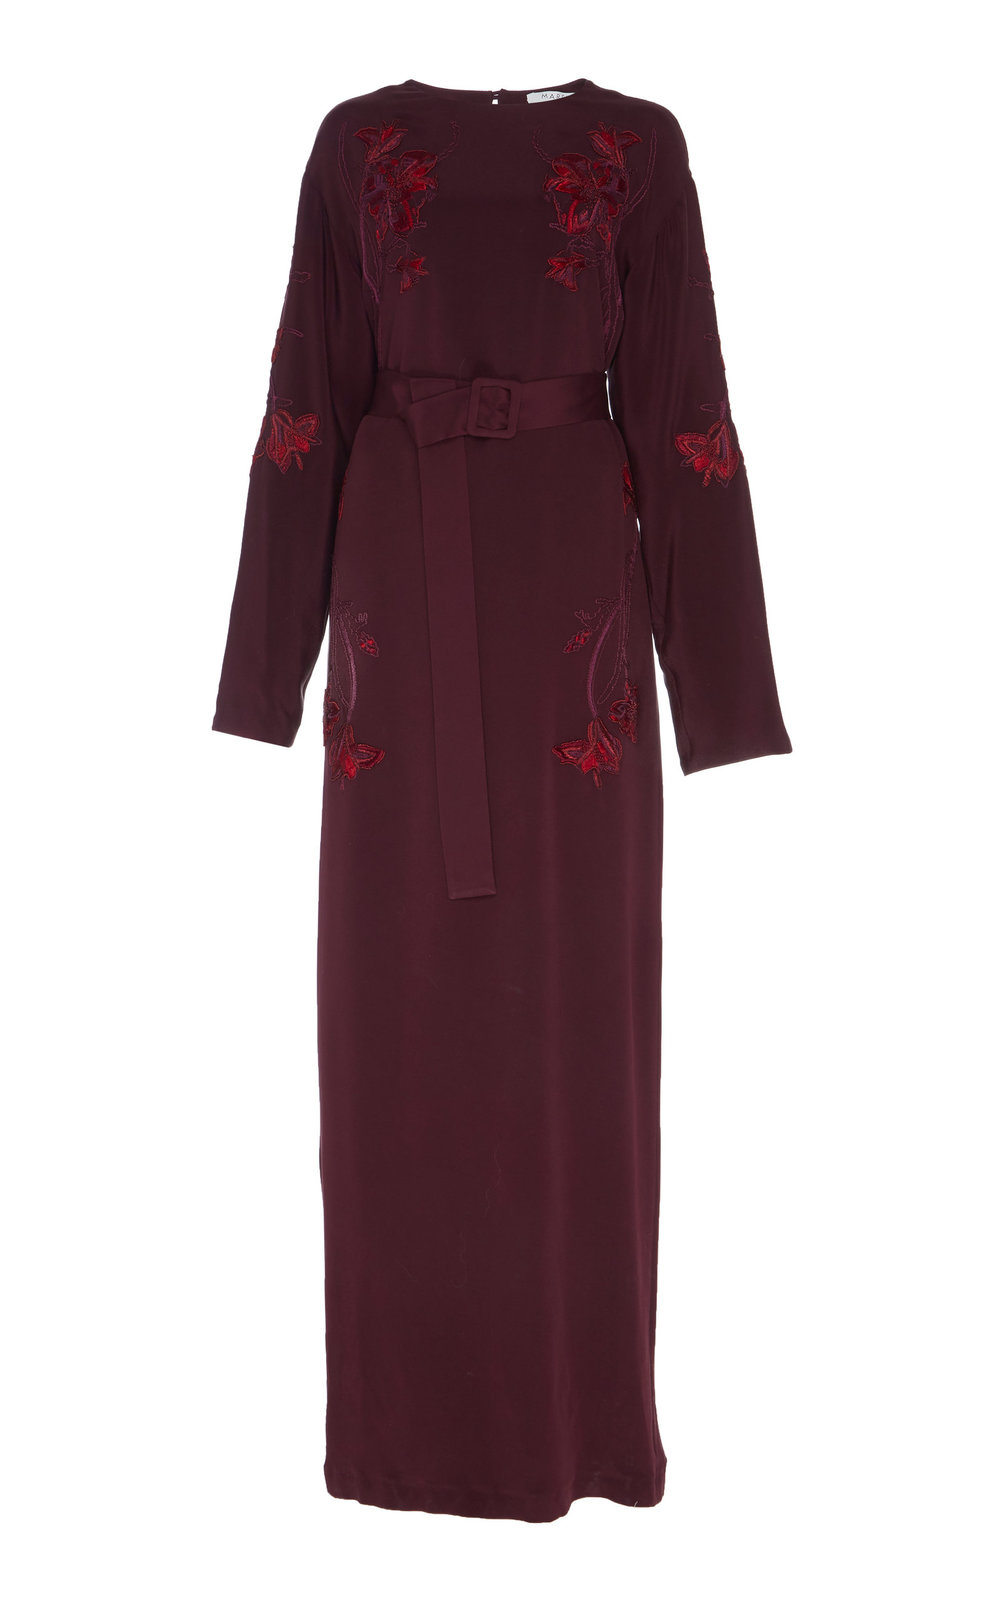 Passiflora Hand-embroidered Silk Dress - BURGUNDY  Crafted in sumptuous Silk, this dress is cut in a slight flared silhouette and finished with a delicate floral hand-embroidery design. Wear yours with a matching belt to define the waistline.